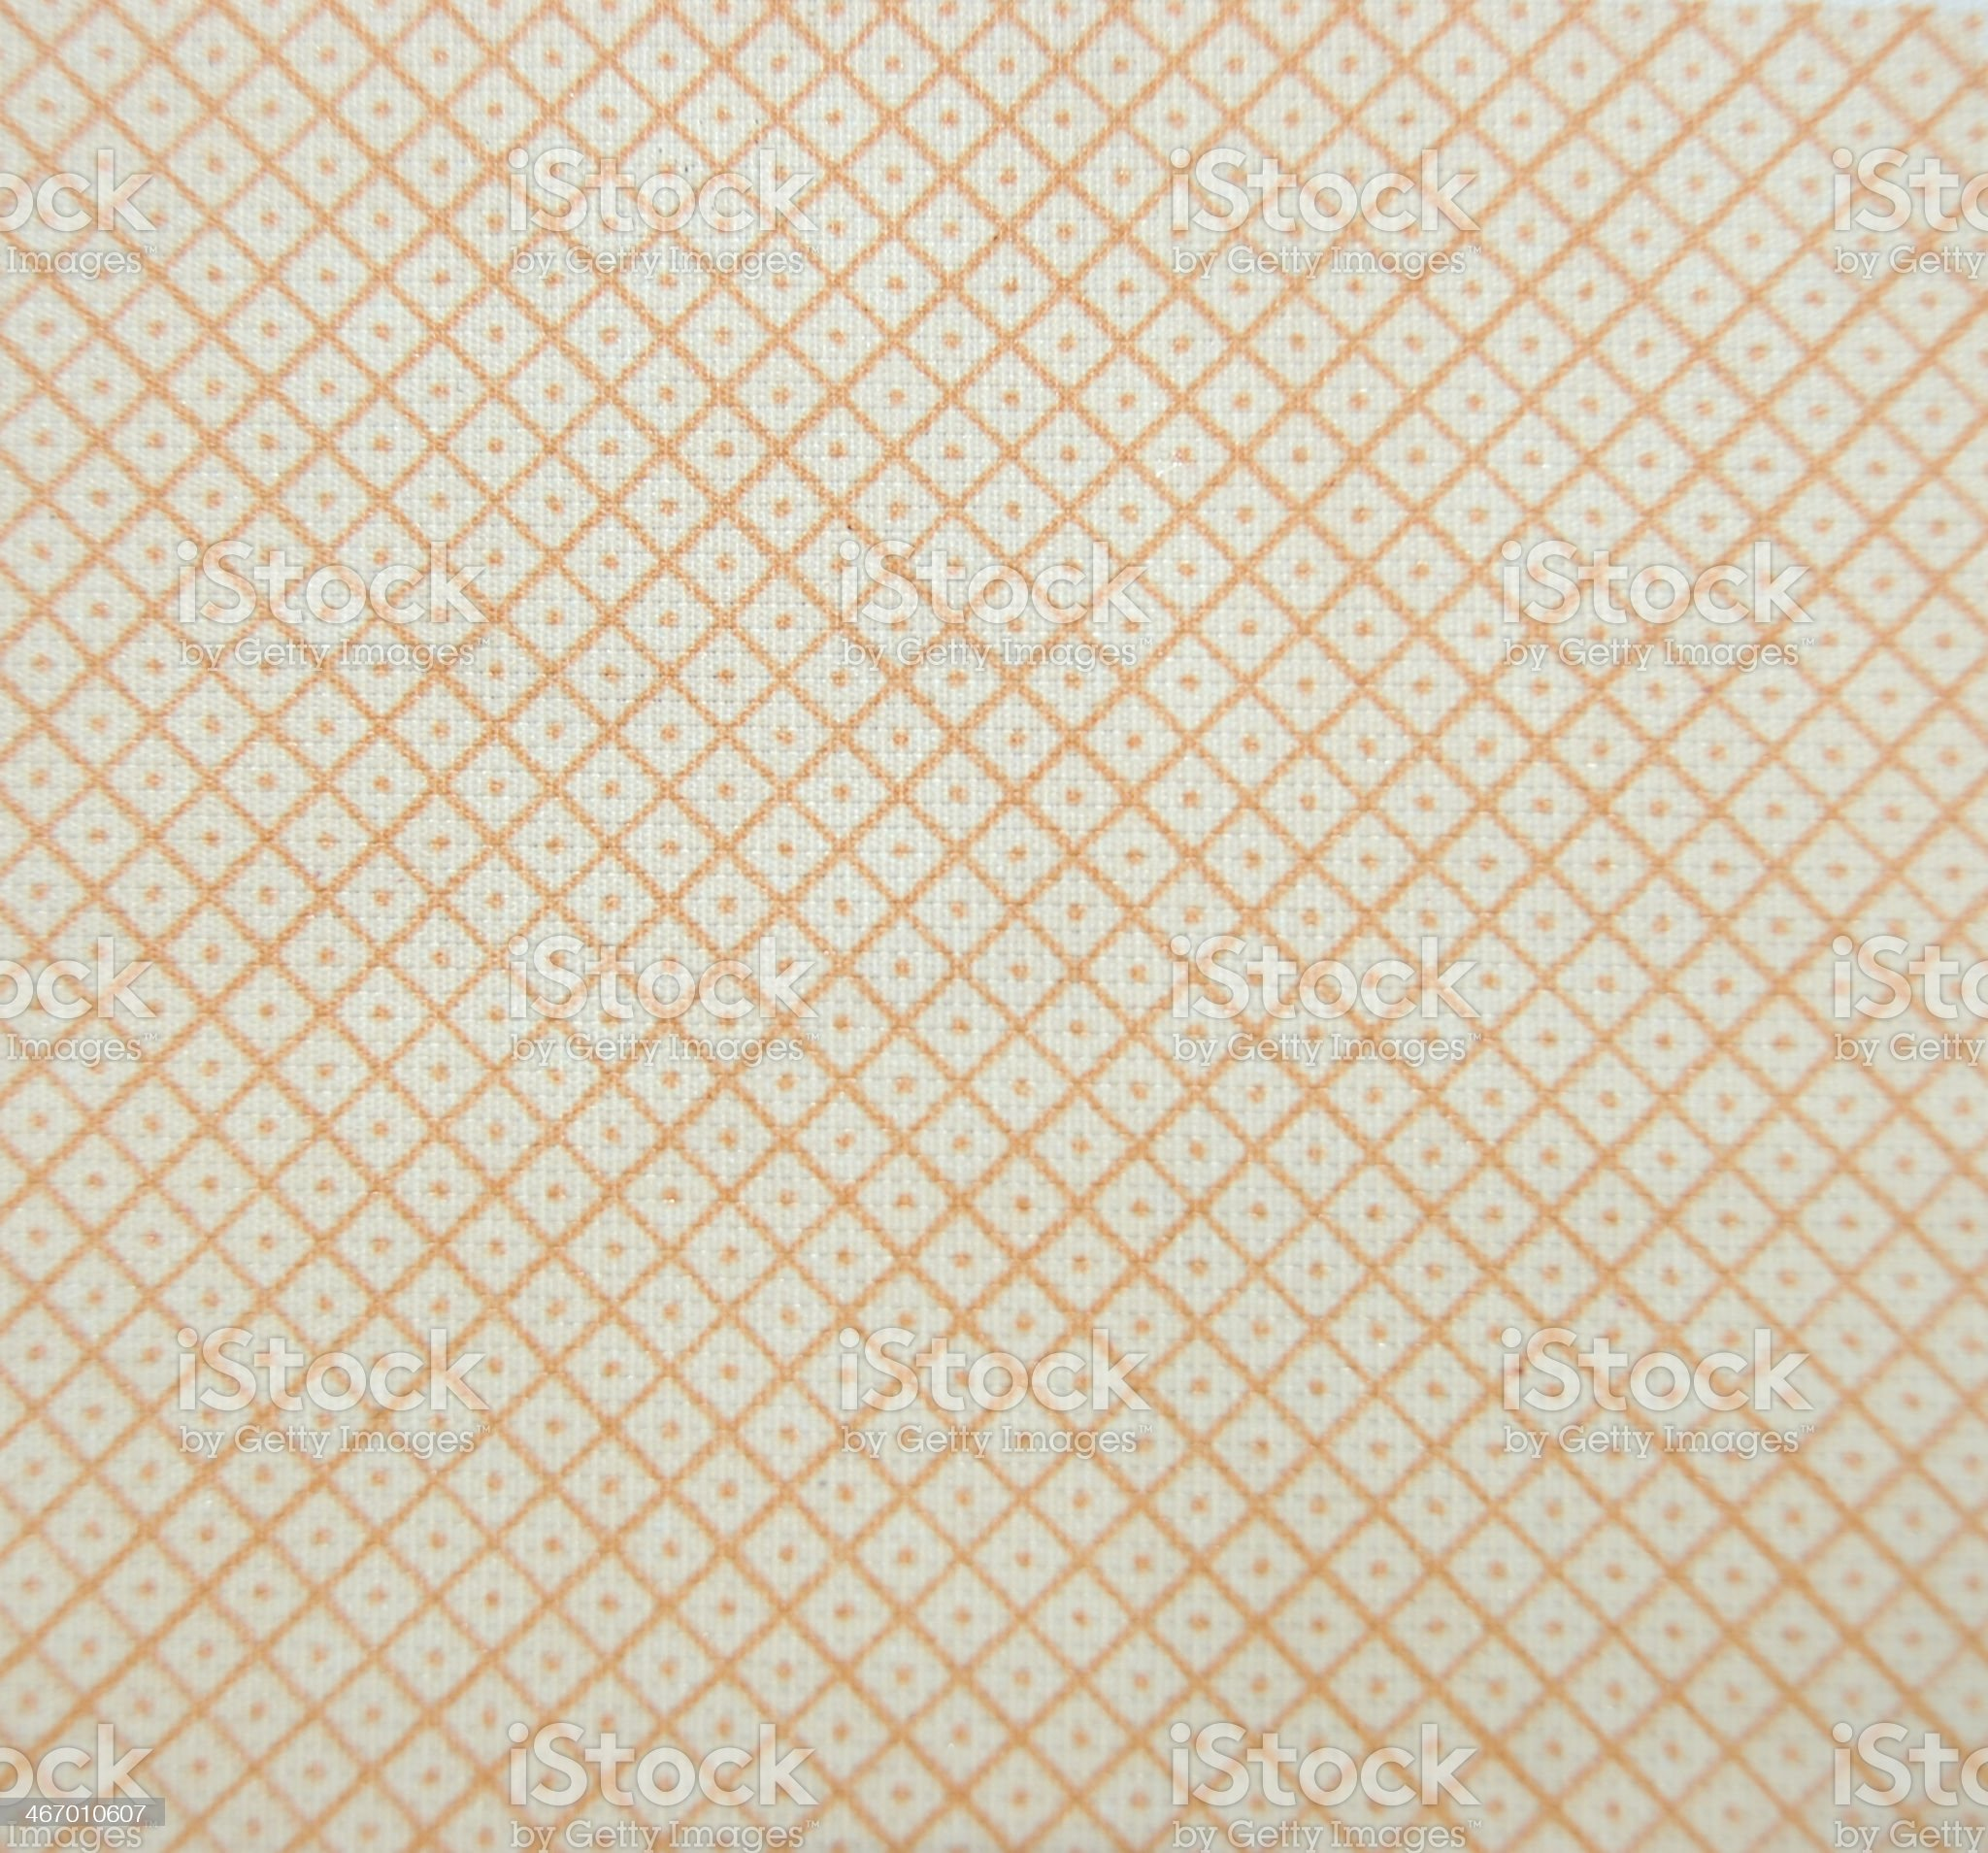 Textures of fabric royalty-free stock photo